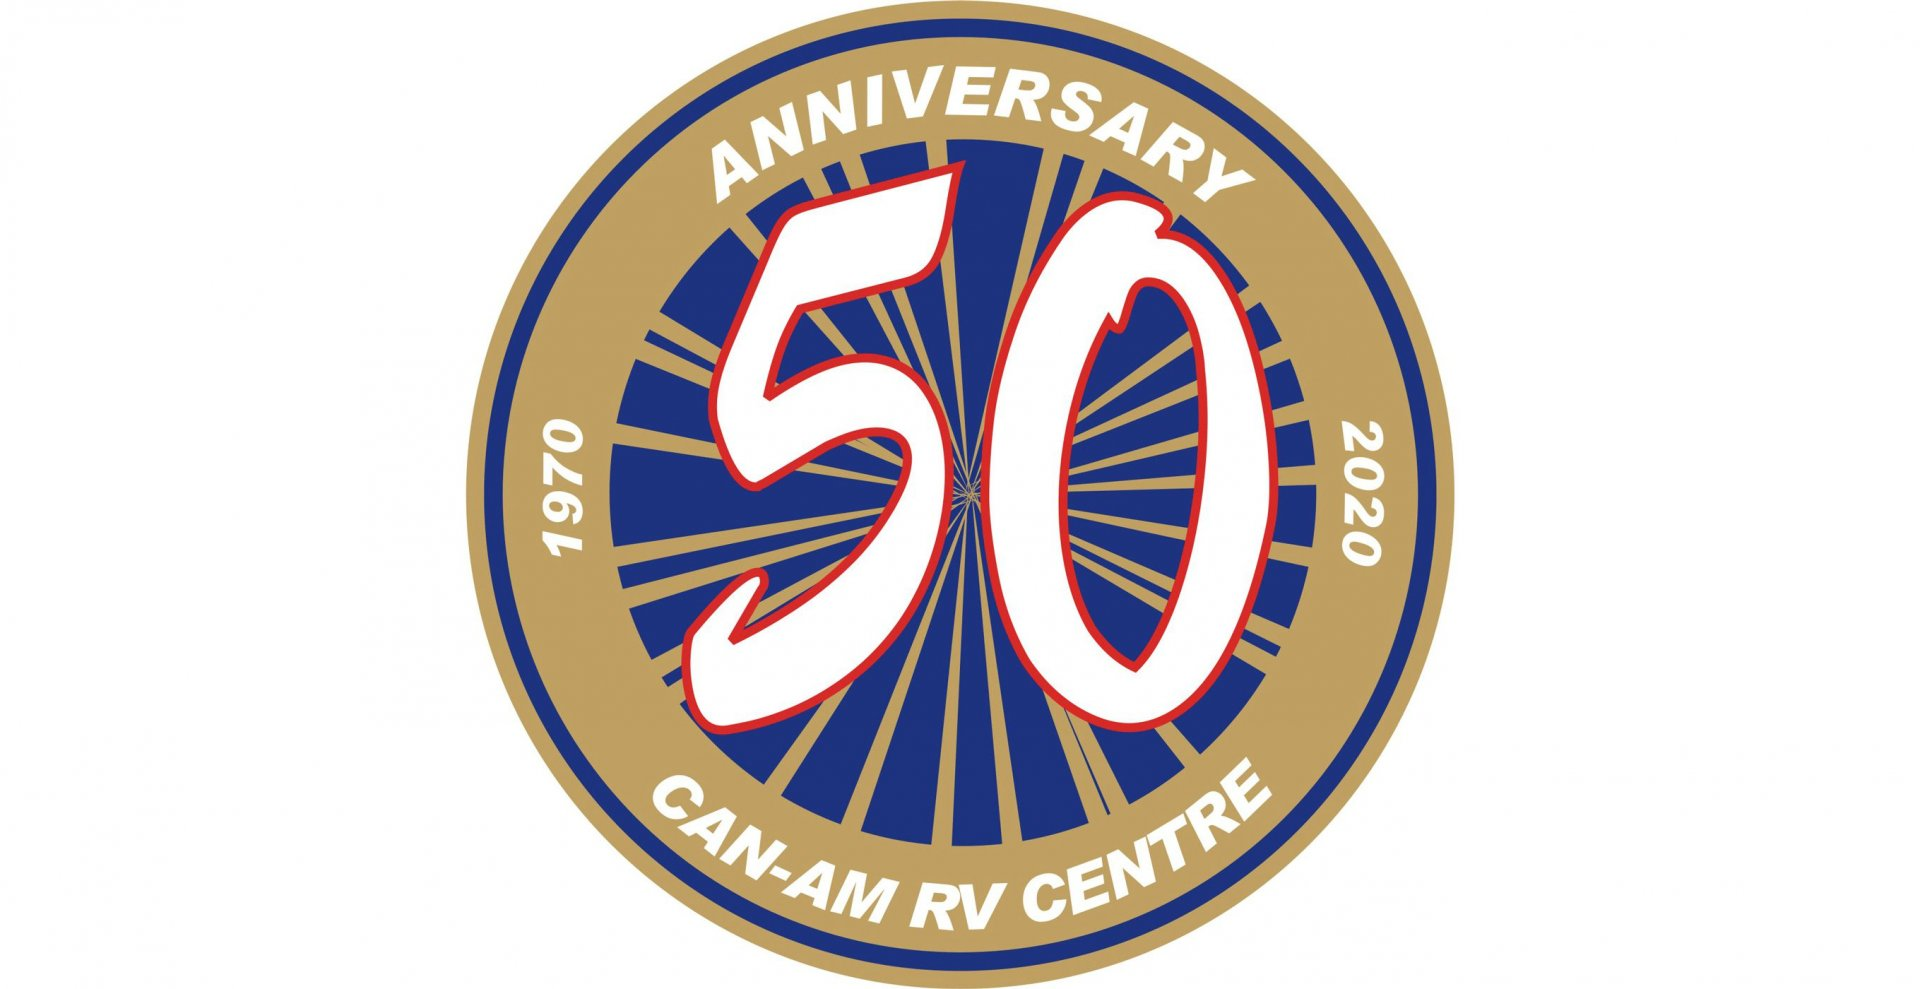 Can-Am RV Centre Celebrates 50 Years Slide Image